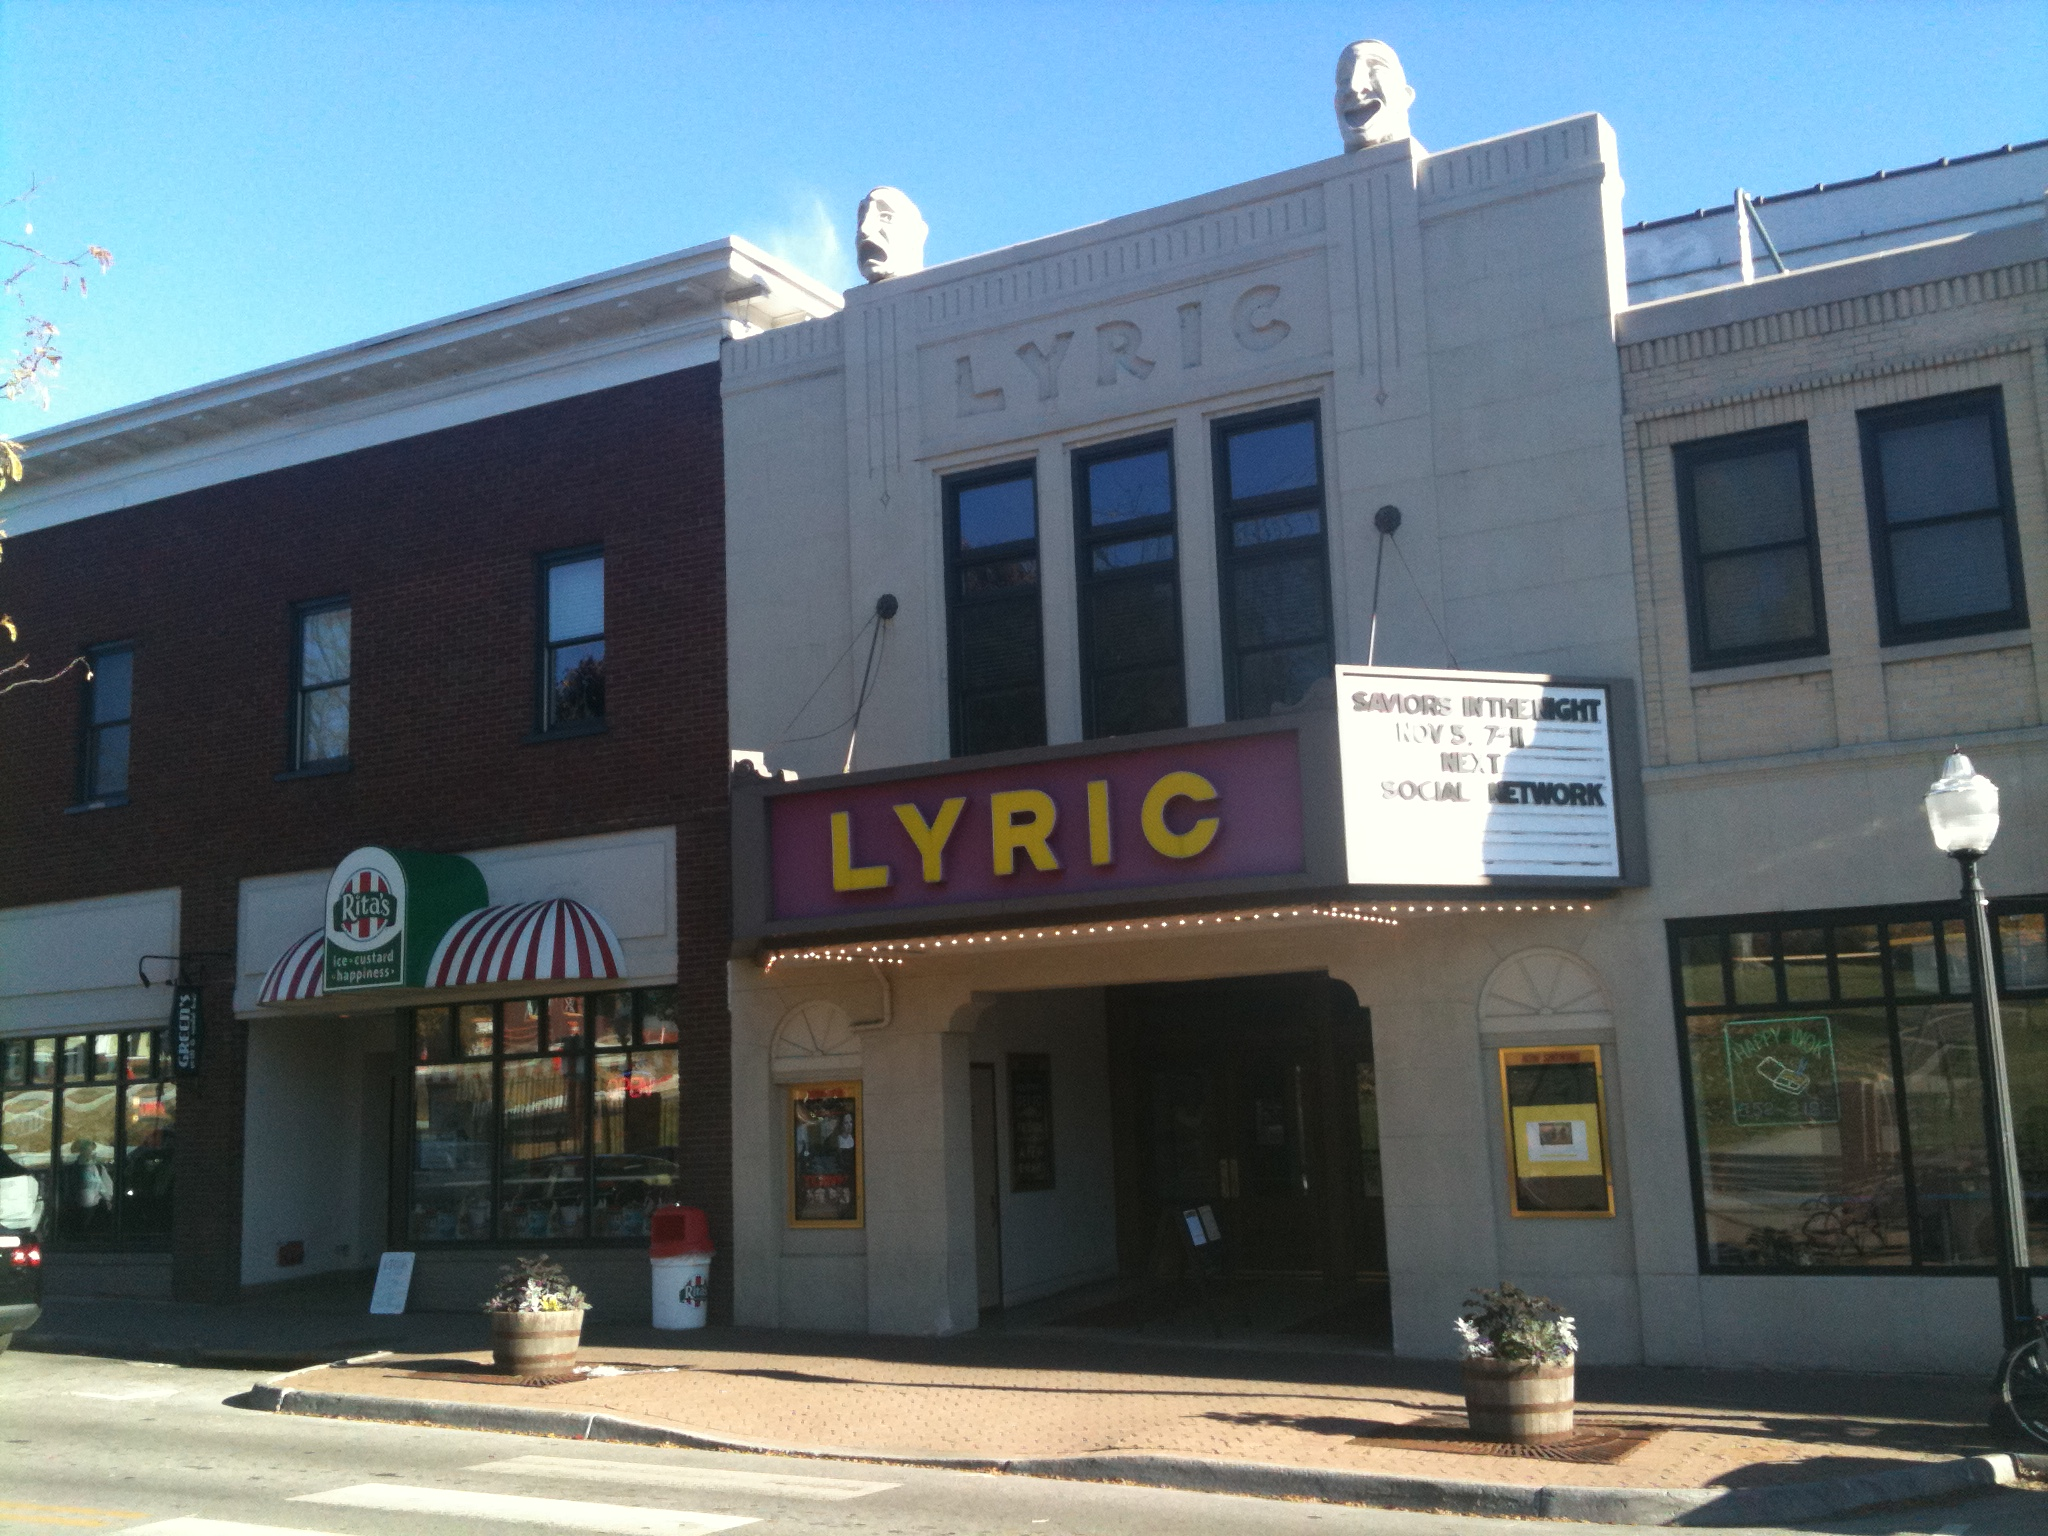 The Lyric Theatre in 2010; image Vineet Doshi - Own work, CC BY-SA 3.0, https://commons.wikimedia.org/w/index.php?curid=11990333